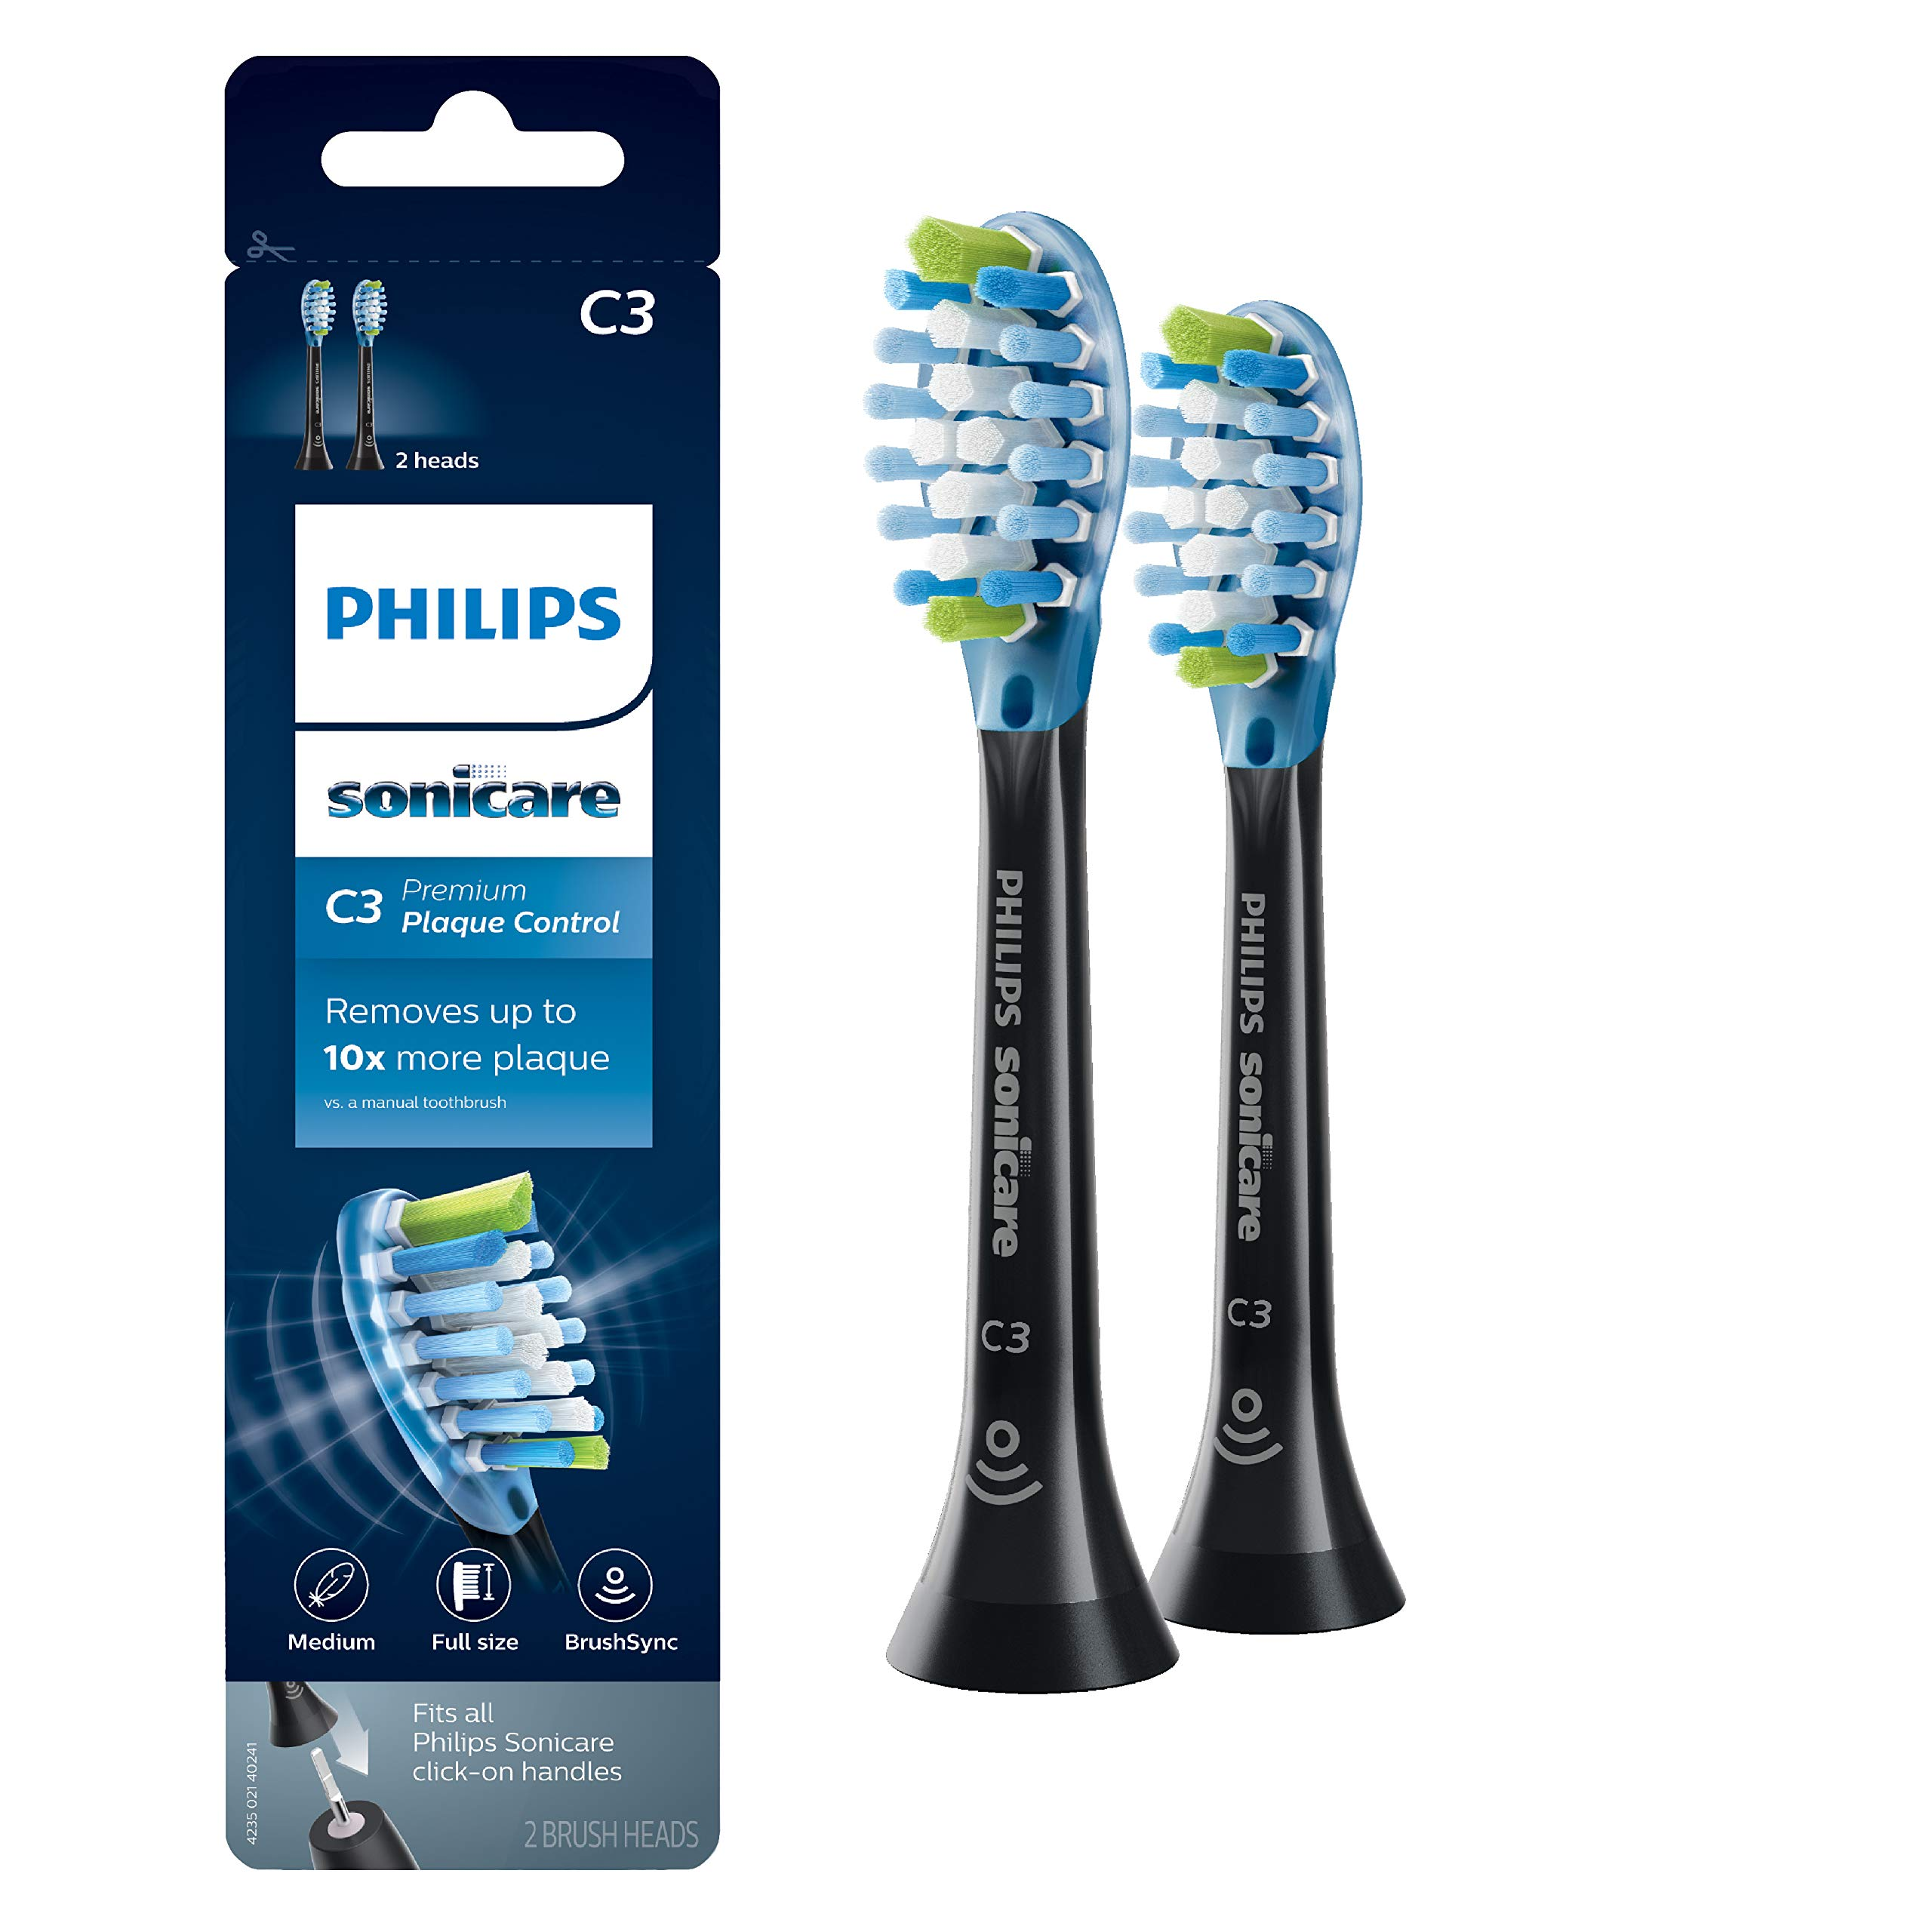 Philips Sonicare Premium Plaque Control replacement toothbrush heads, HX9042/95, BrushSync technology, Black,Count 2,Pack of 1